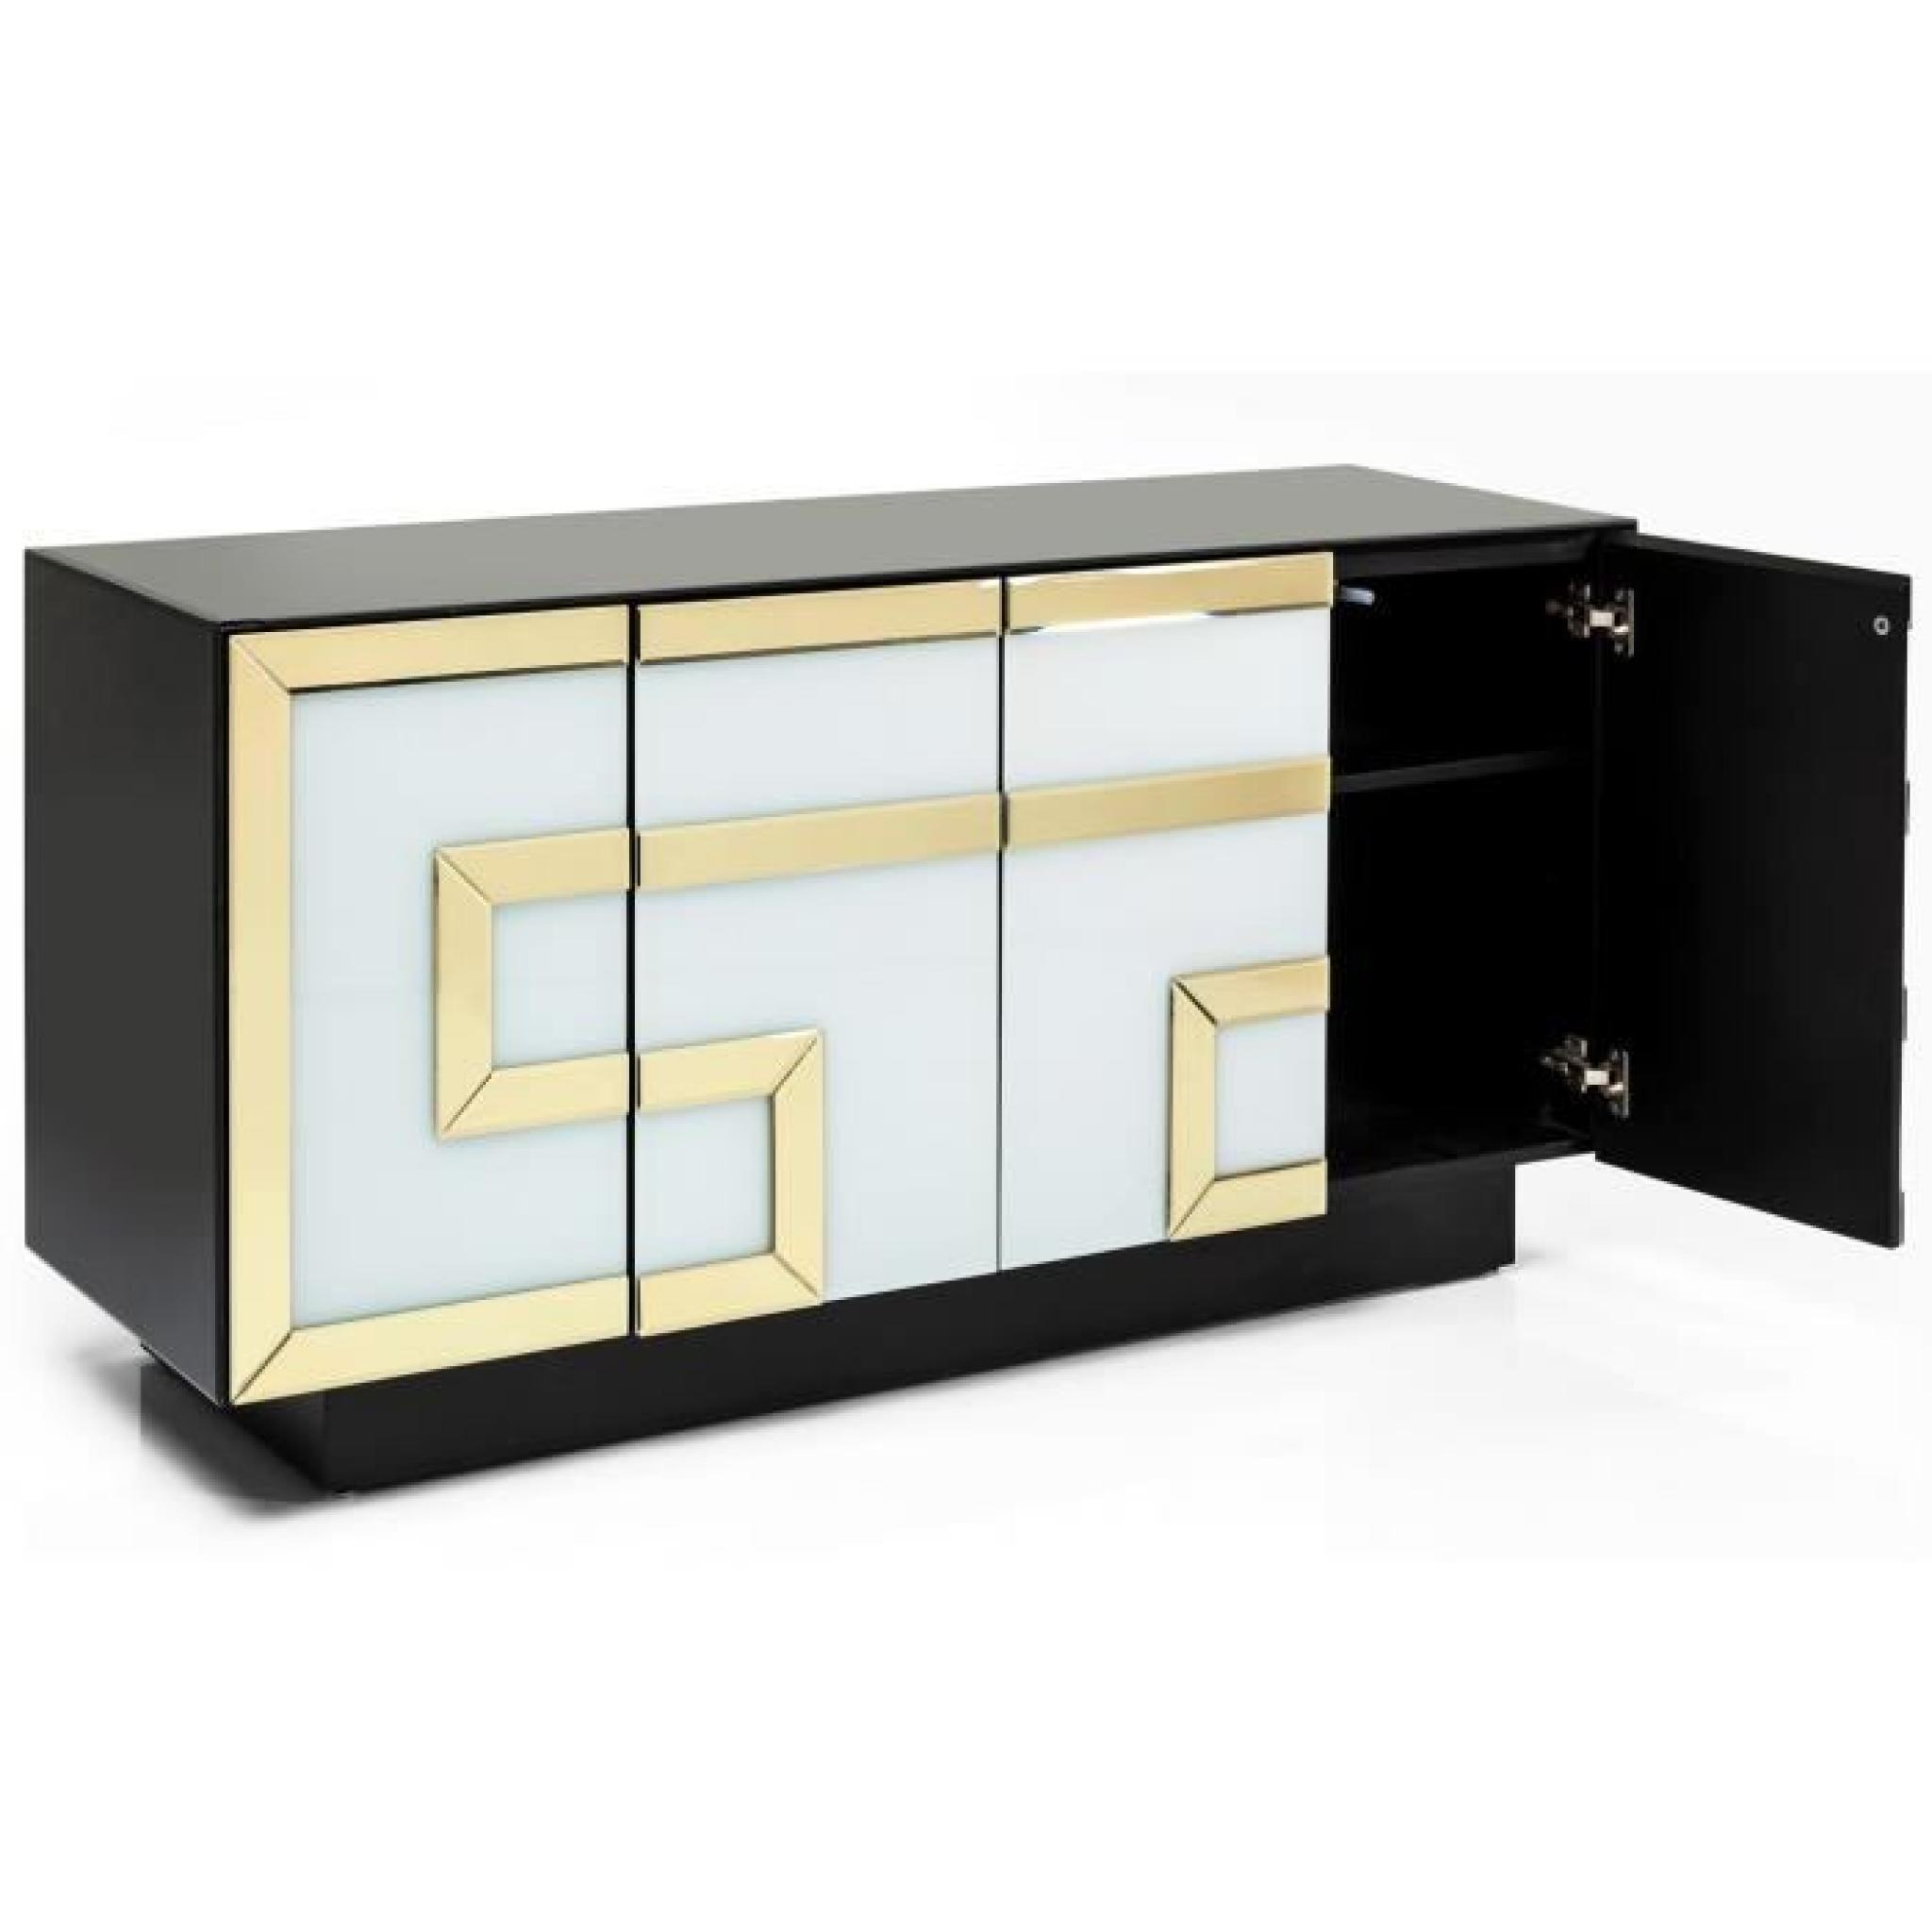 buffet design verre blanc or noir 4 portes achat vente buffet pas cher couleur et. Black Bedroom Furniture Sets. Home Design Ideas